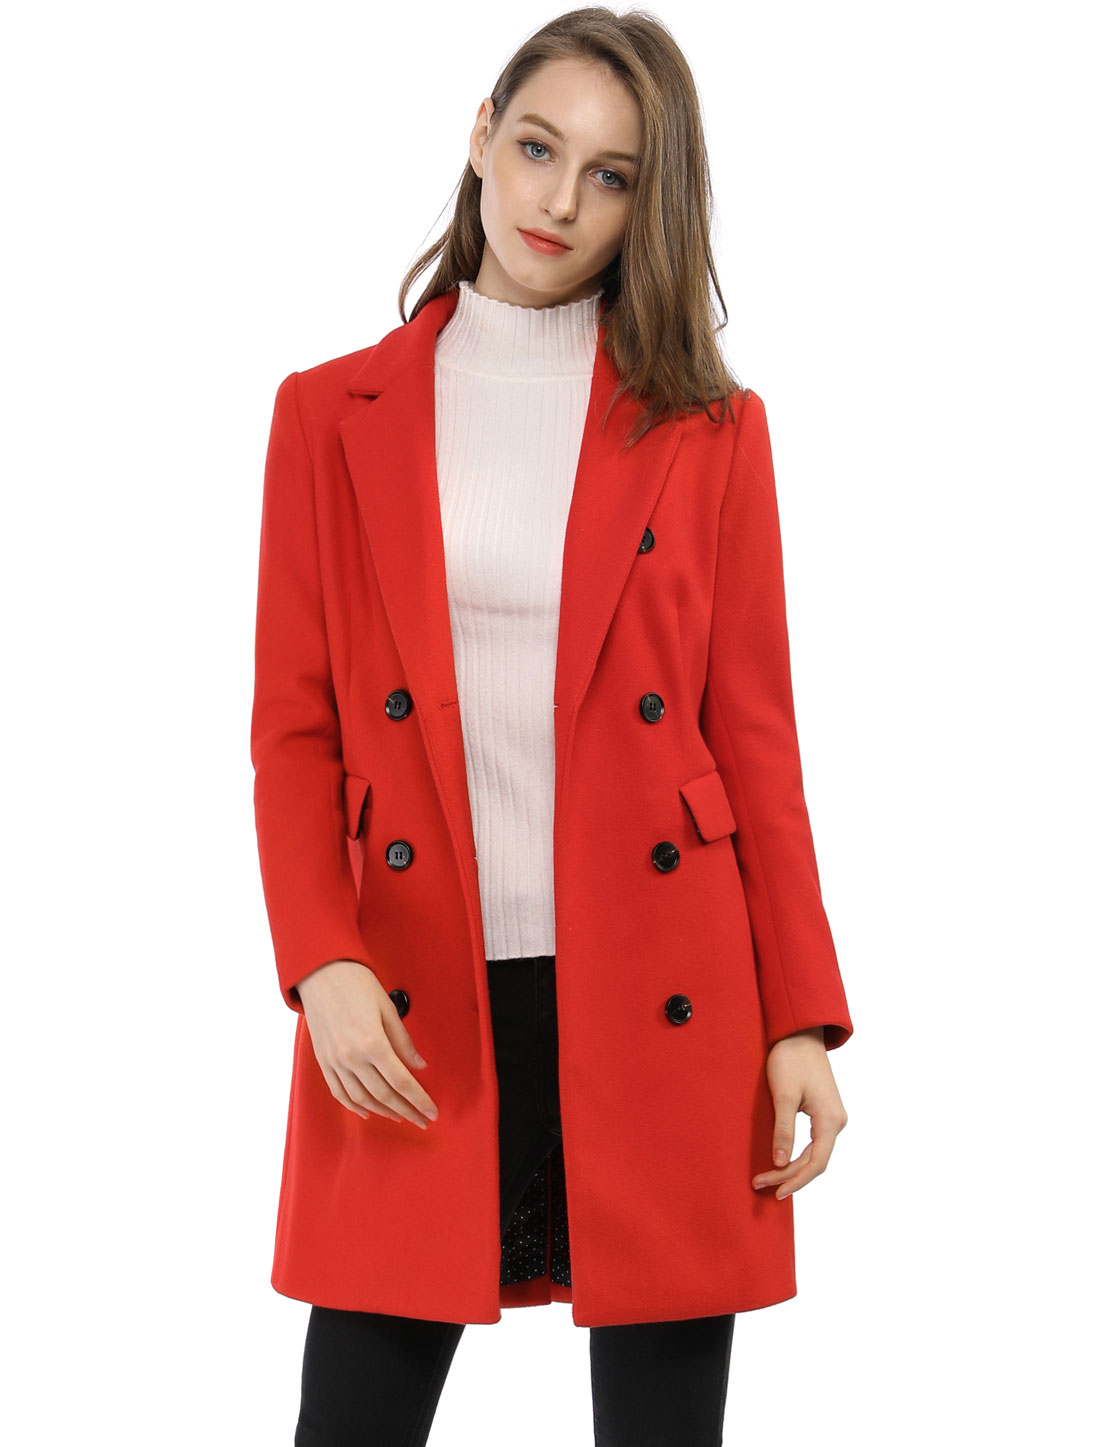 Women Notched Lapel Double Breasted Trench Coat Red-1 XL